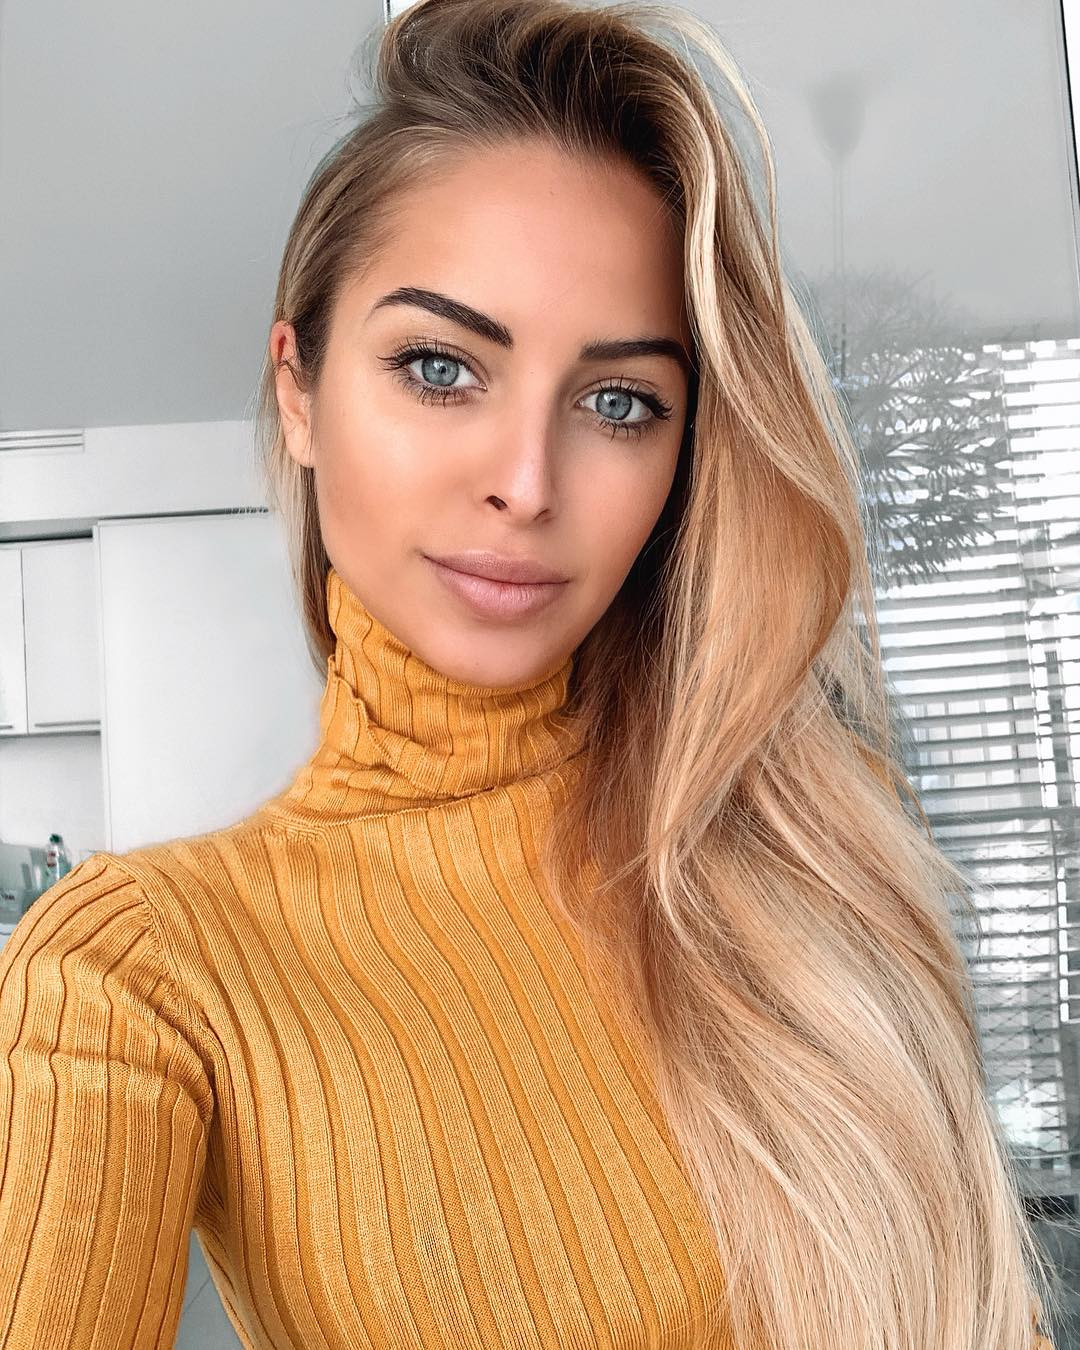 Chiara-Bransi-Wallpapers-Insta-Fit-Bio-12